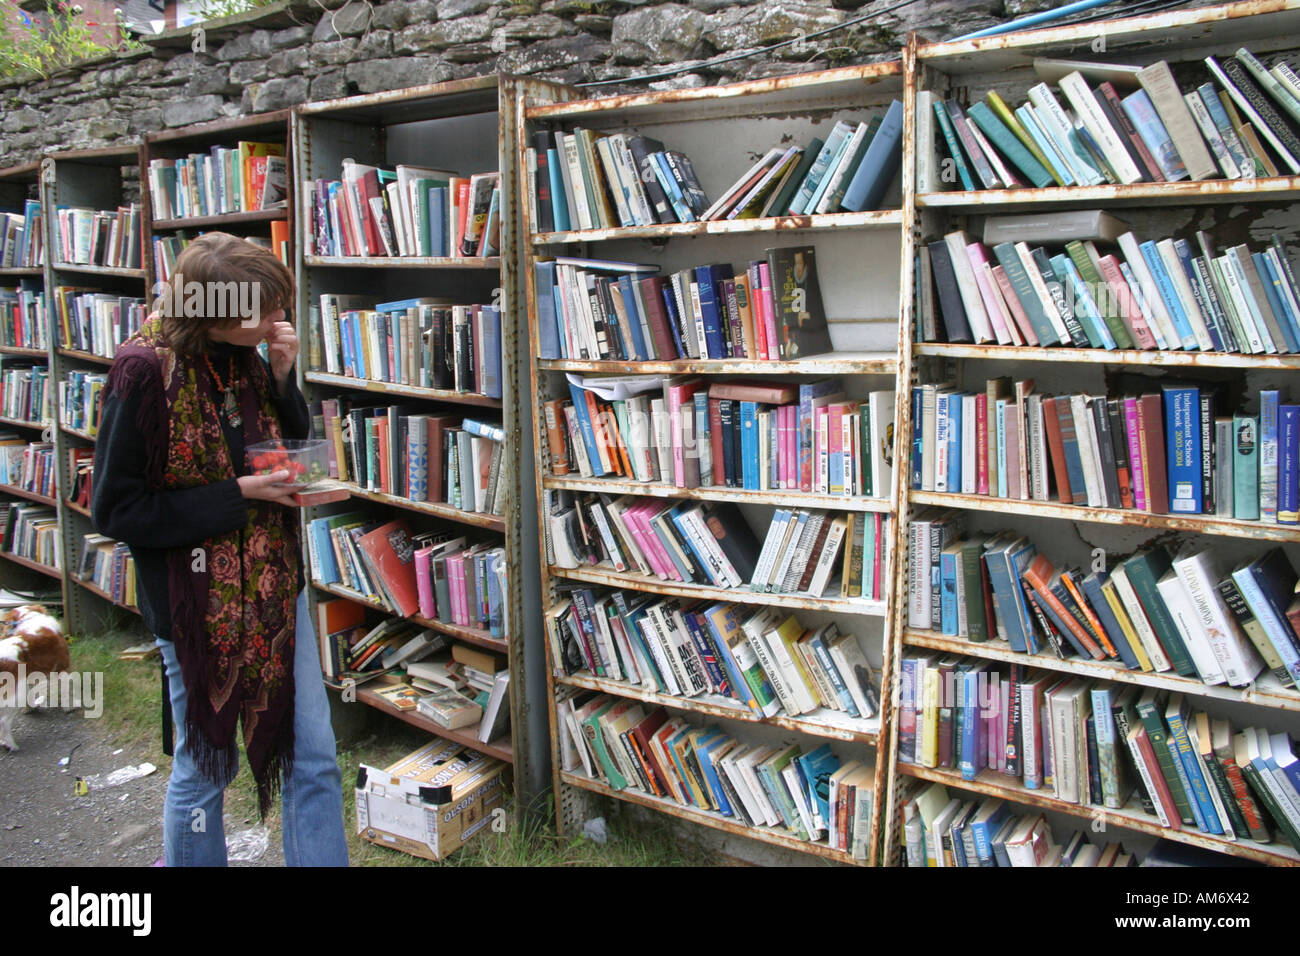 Hay on Wye Book Festival 2005 Mid Wales - Stock Image